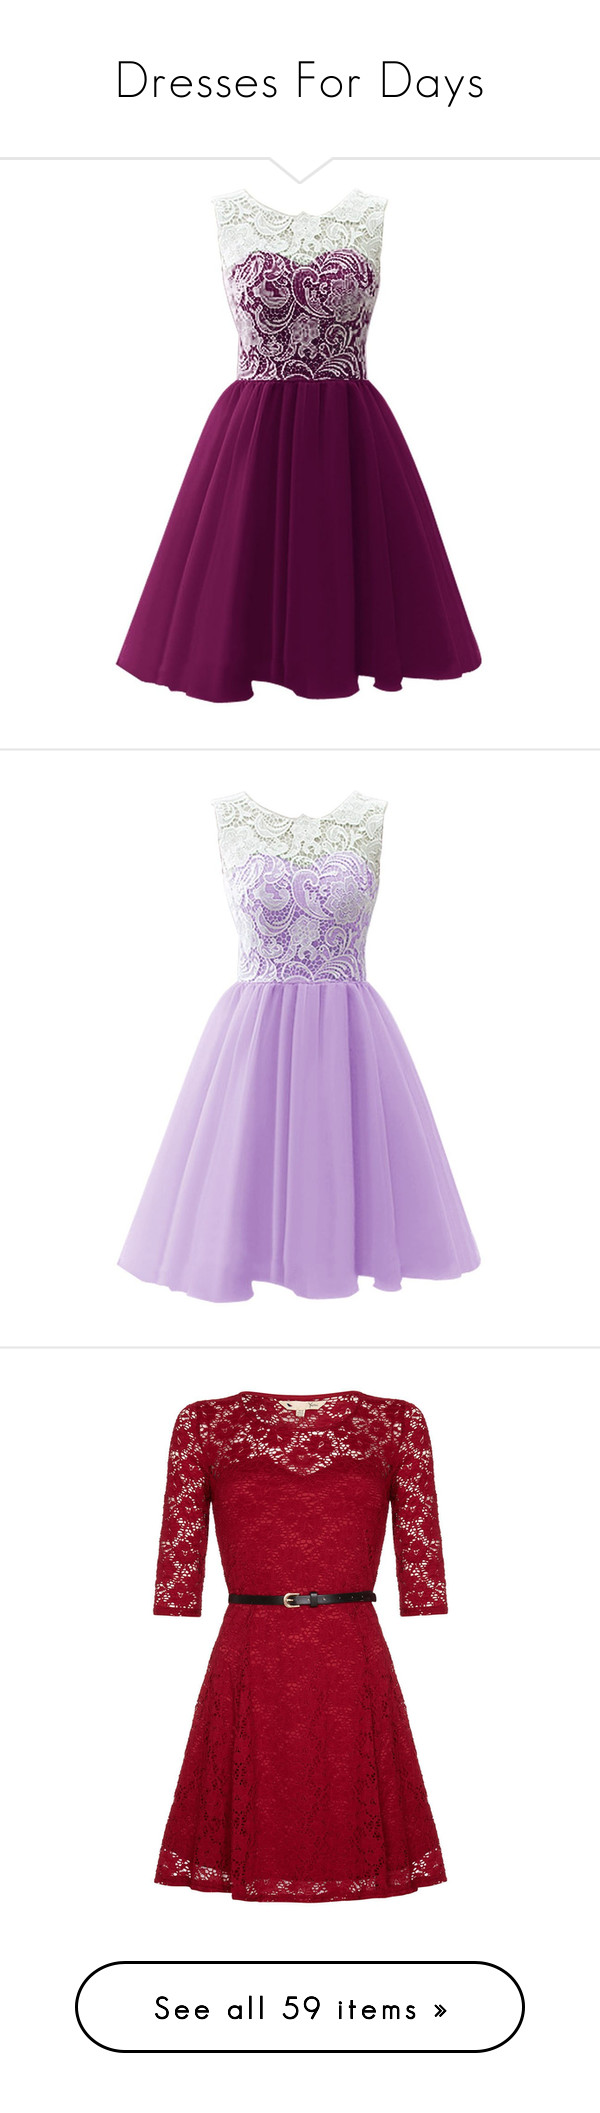 """""""Dresses For Days"""" by sevenseas-18 ❤ liked on Polyvore featuring dresses, vestidos, short dresses, purple, prom, lace dress, short prom dresses, purple lace dress, purple prom dresses and cocktail dresses"""